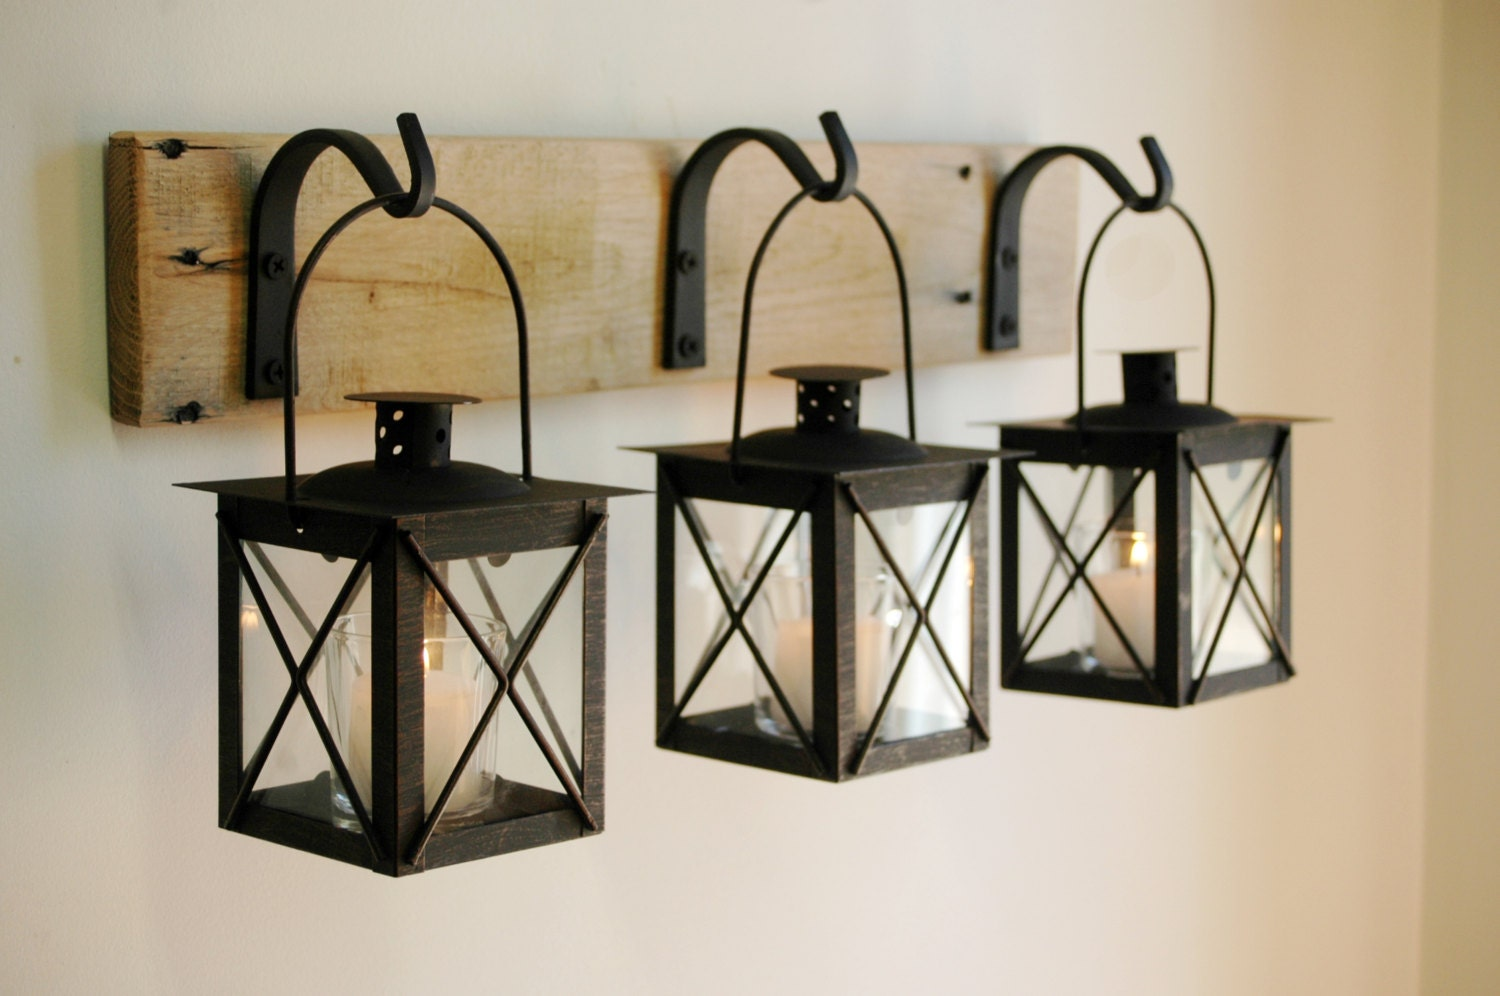 Home Decorative Item Model Endearing Black Lantern Trio Wall Decor Home Decor Rustic Decor Review